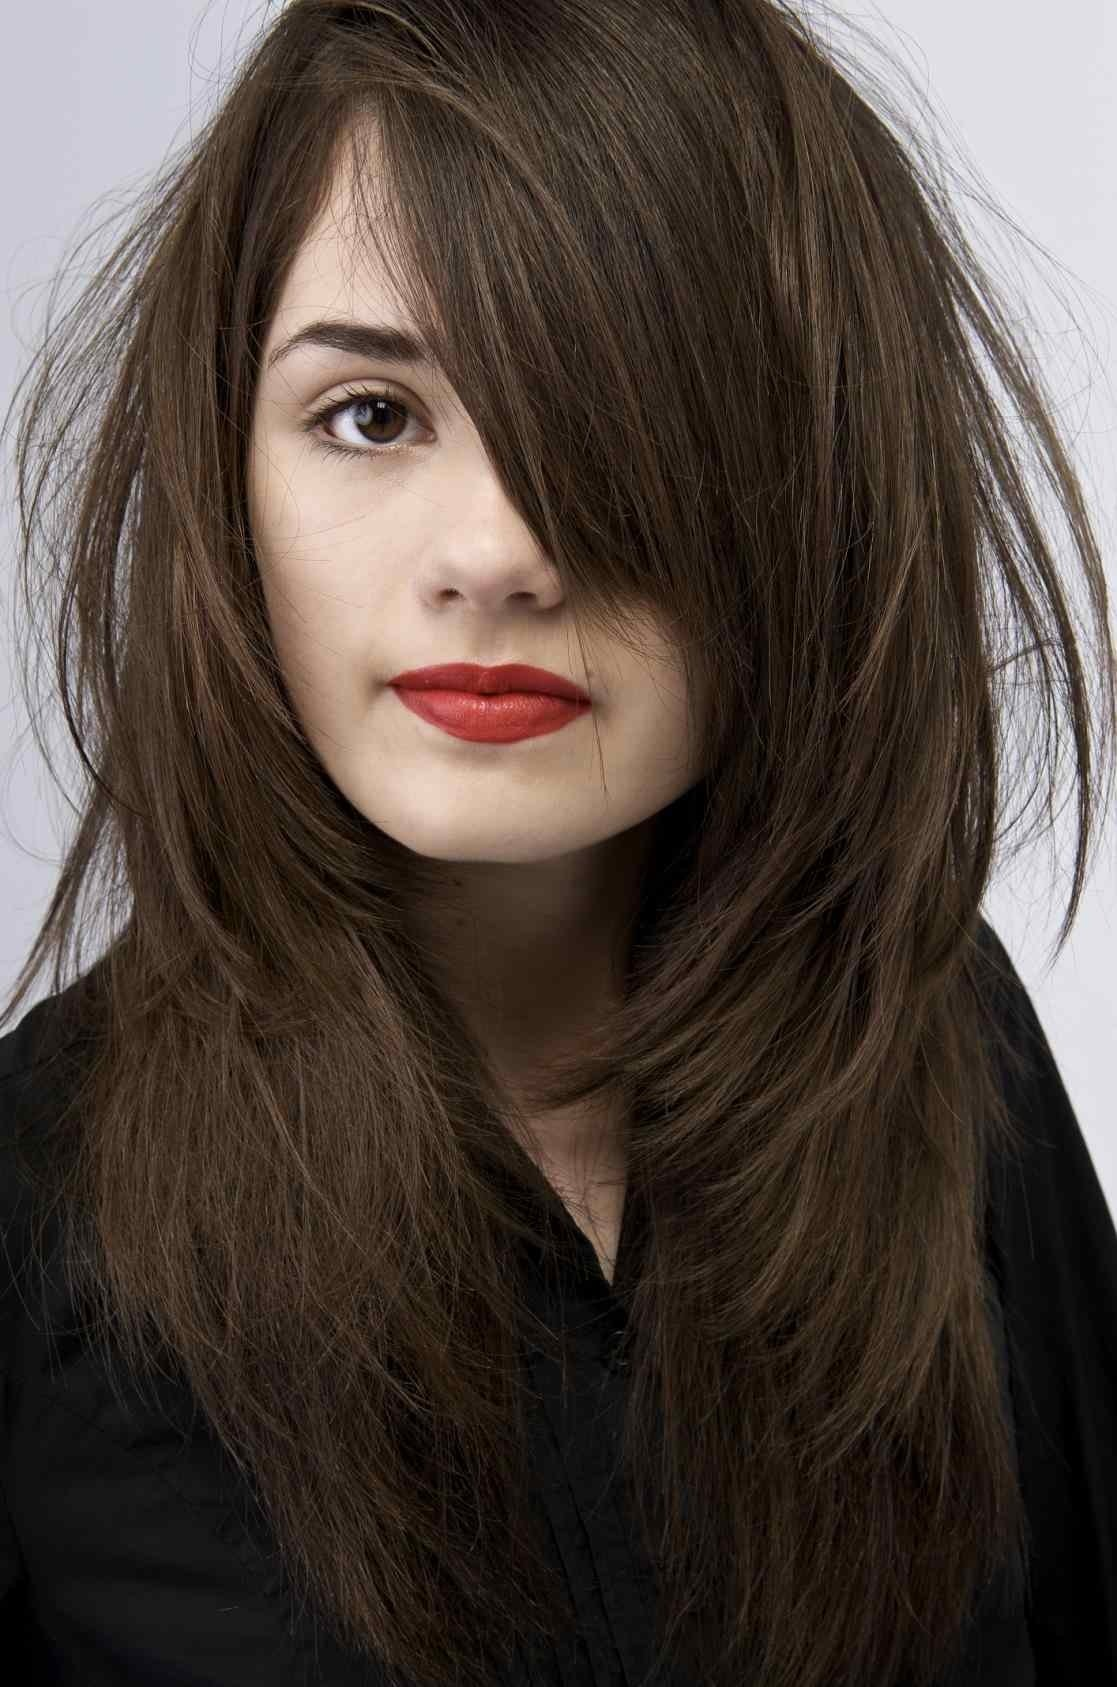 10 Nice Cool Hair Color Ideas For Brunettes hair color ideas for brunettes with green eyes hair ideas styles 2021